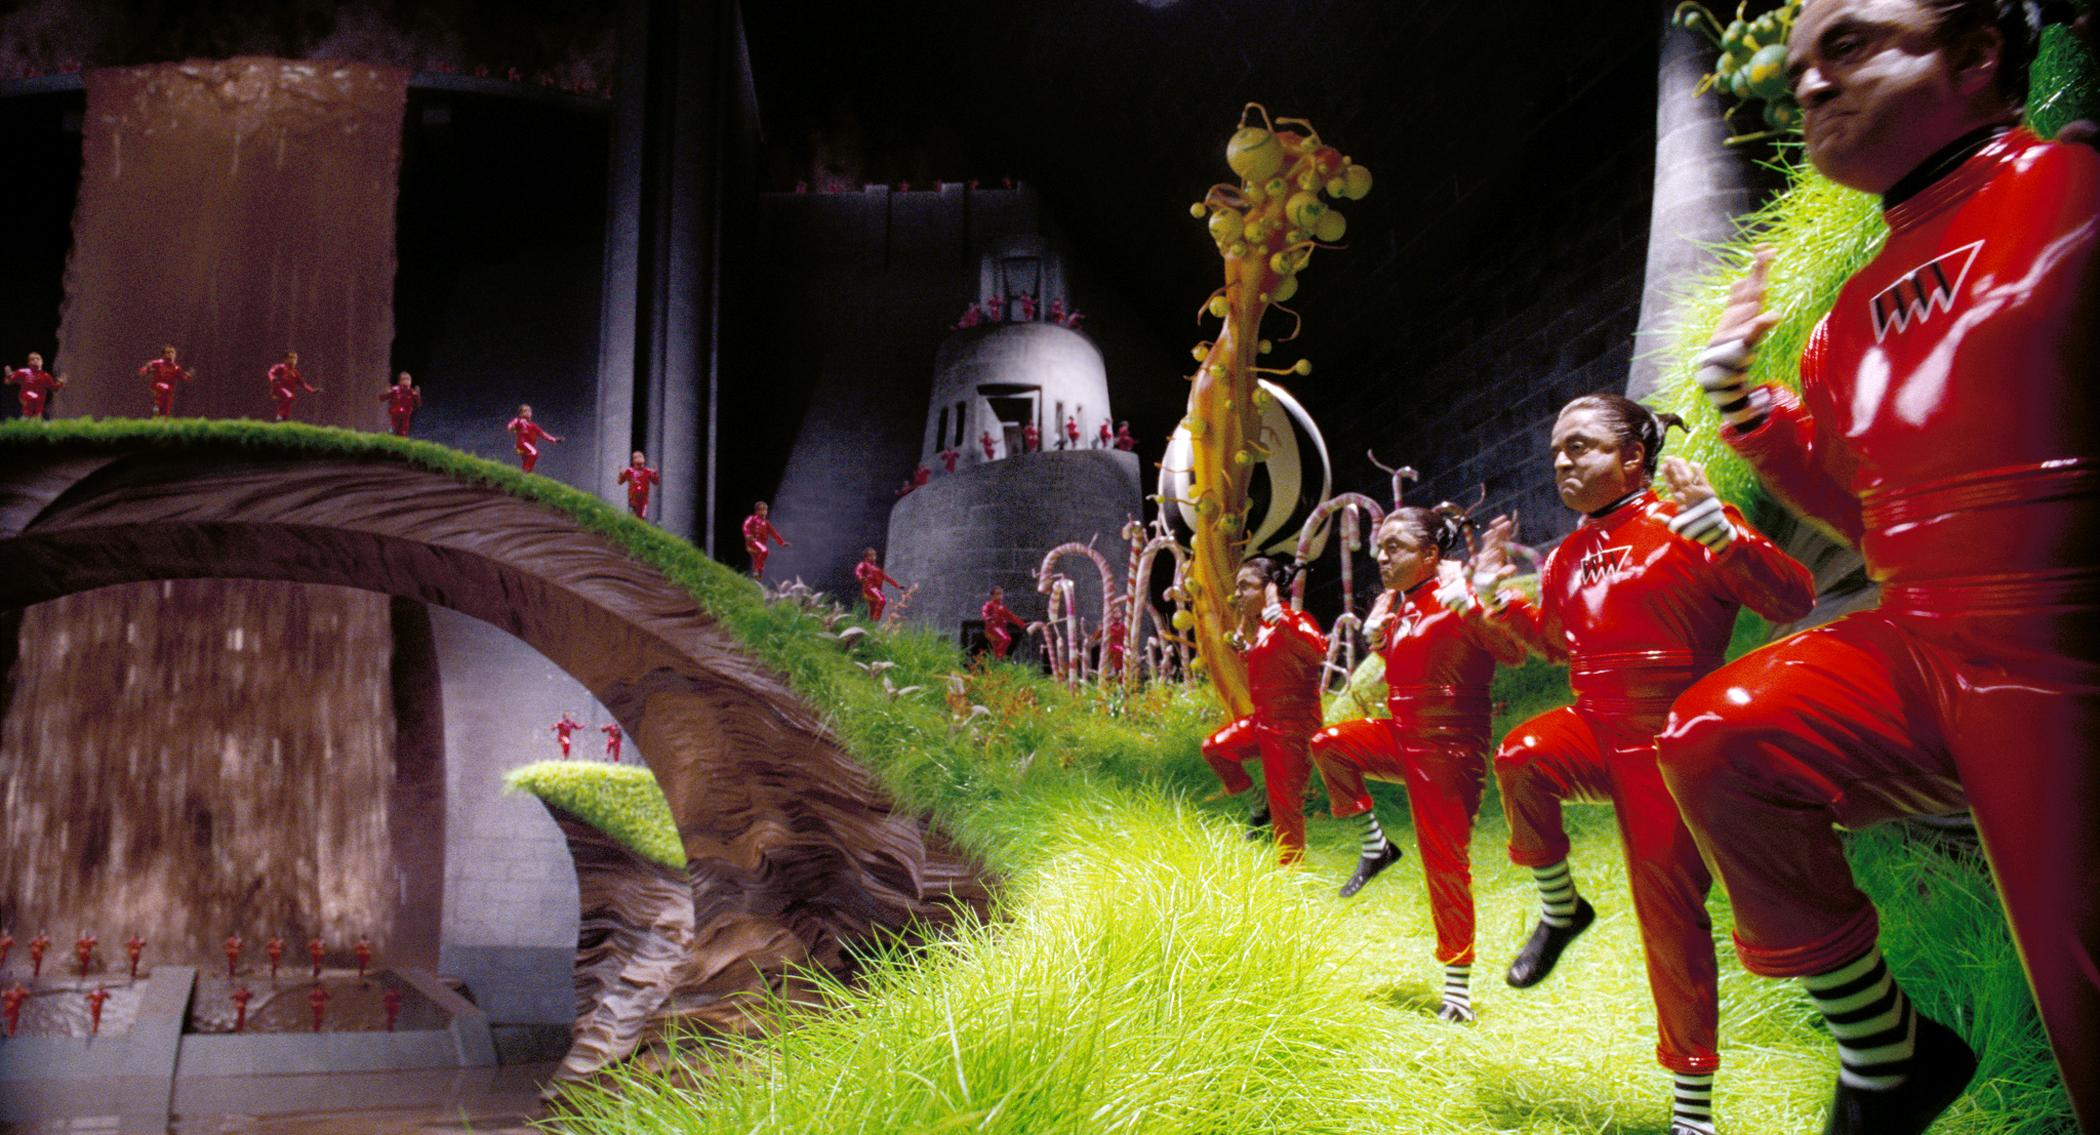 Dancing Oompa Loompas (all played by Deep Roy) in Charlie and the Chocolate Factory (2005)